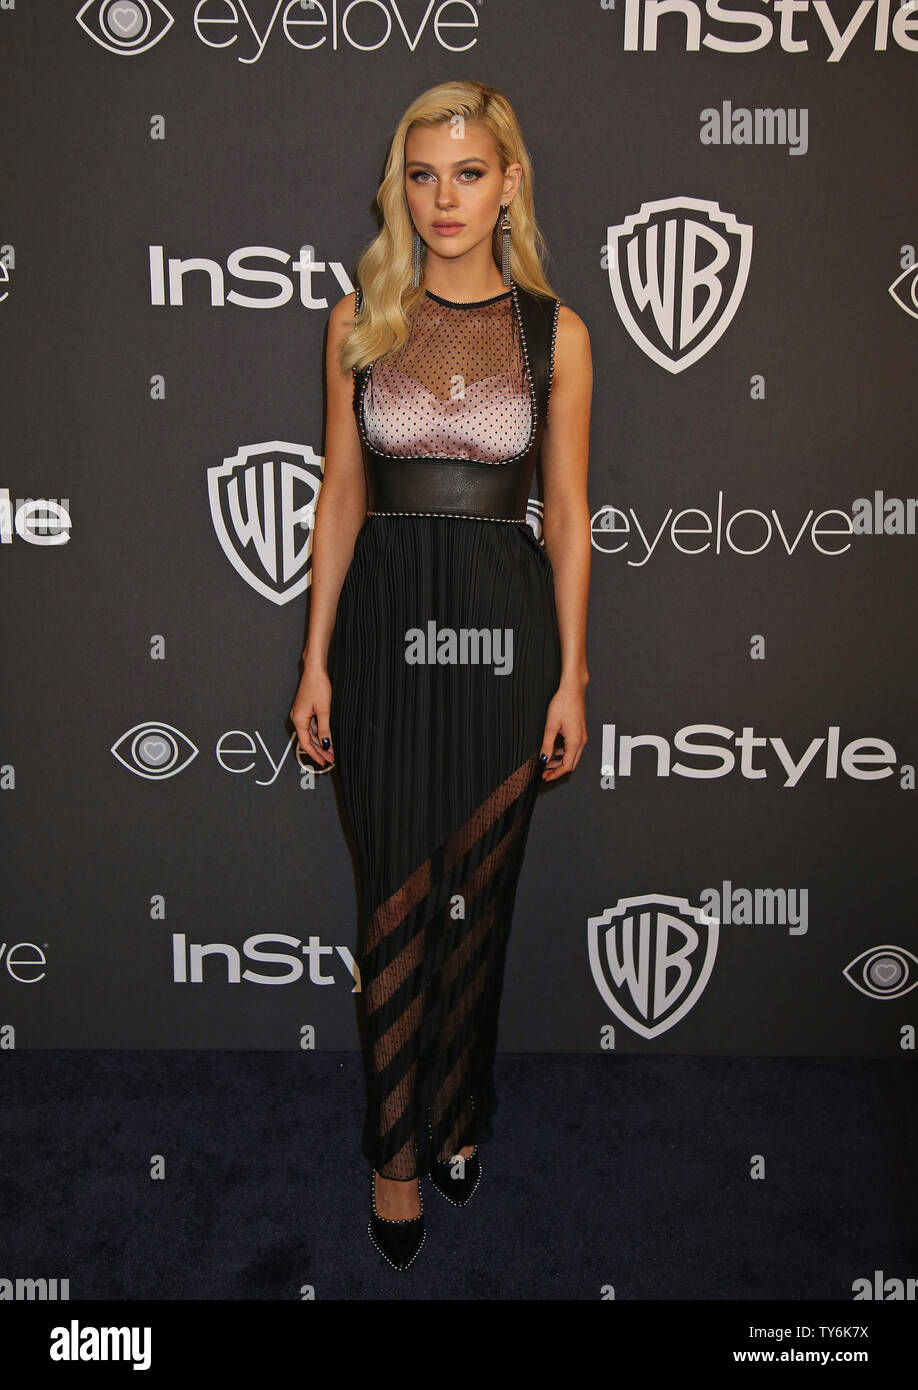 Nicola Peltz attends the 18th annual InStyle and Warner Bros. Golden Globe after-party at the Beverly Hilton Hotel in Beverly Hills, California on January 8, 2017.  Photo by David Silpa/UPI - Stock Image